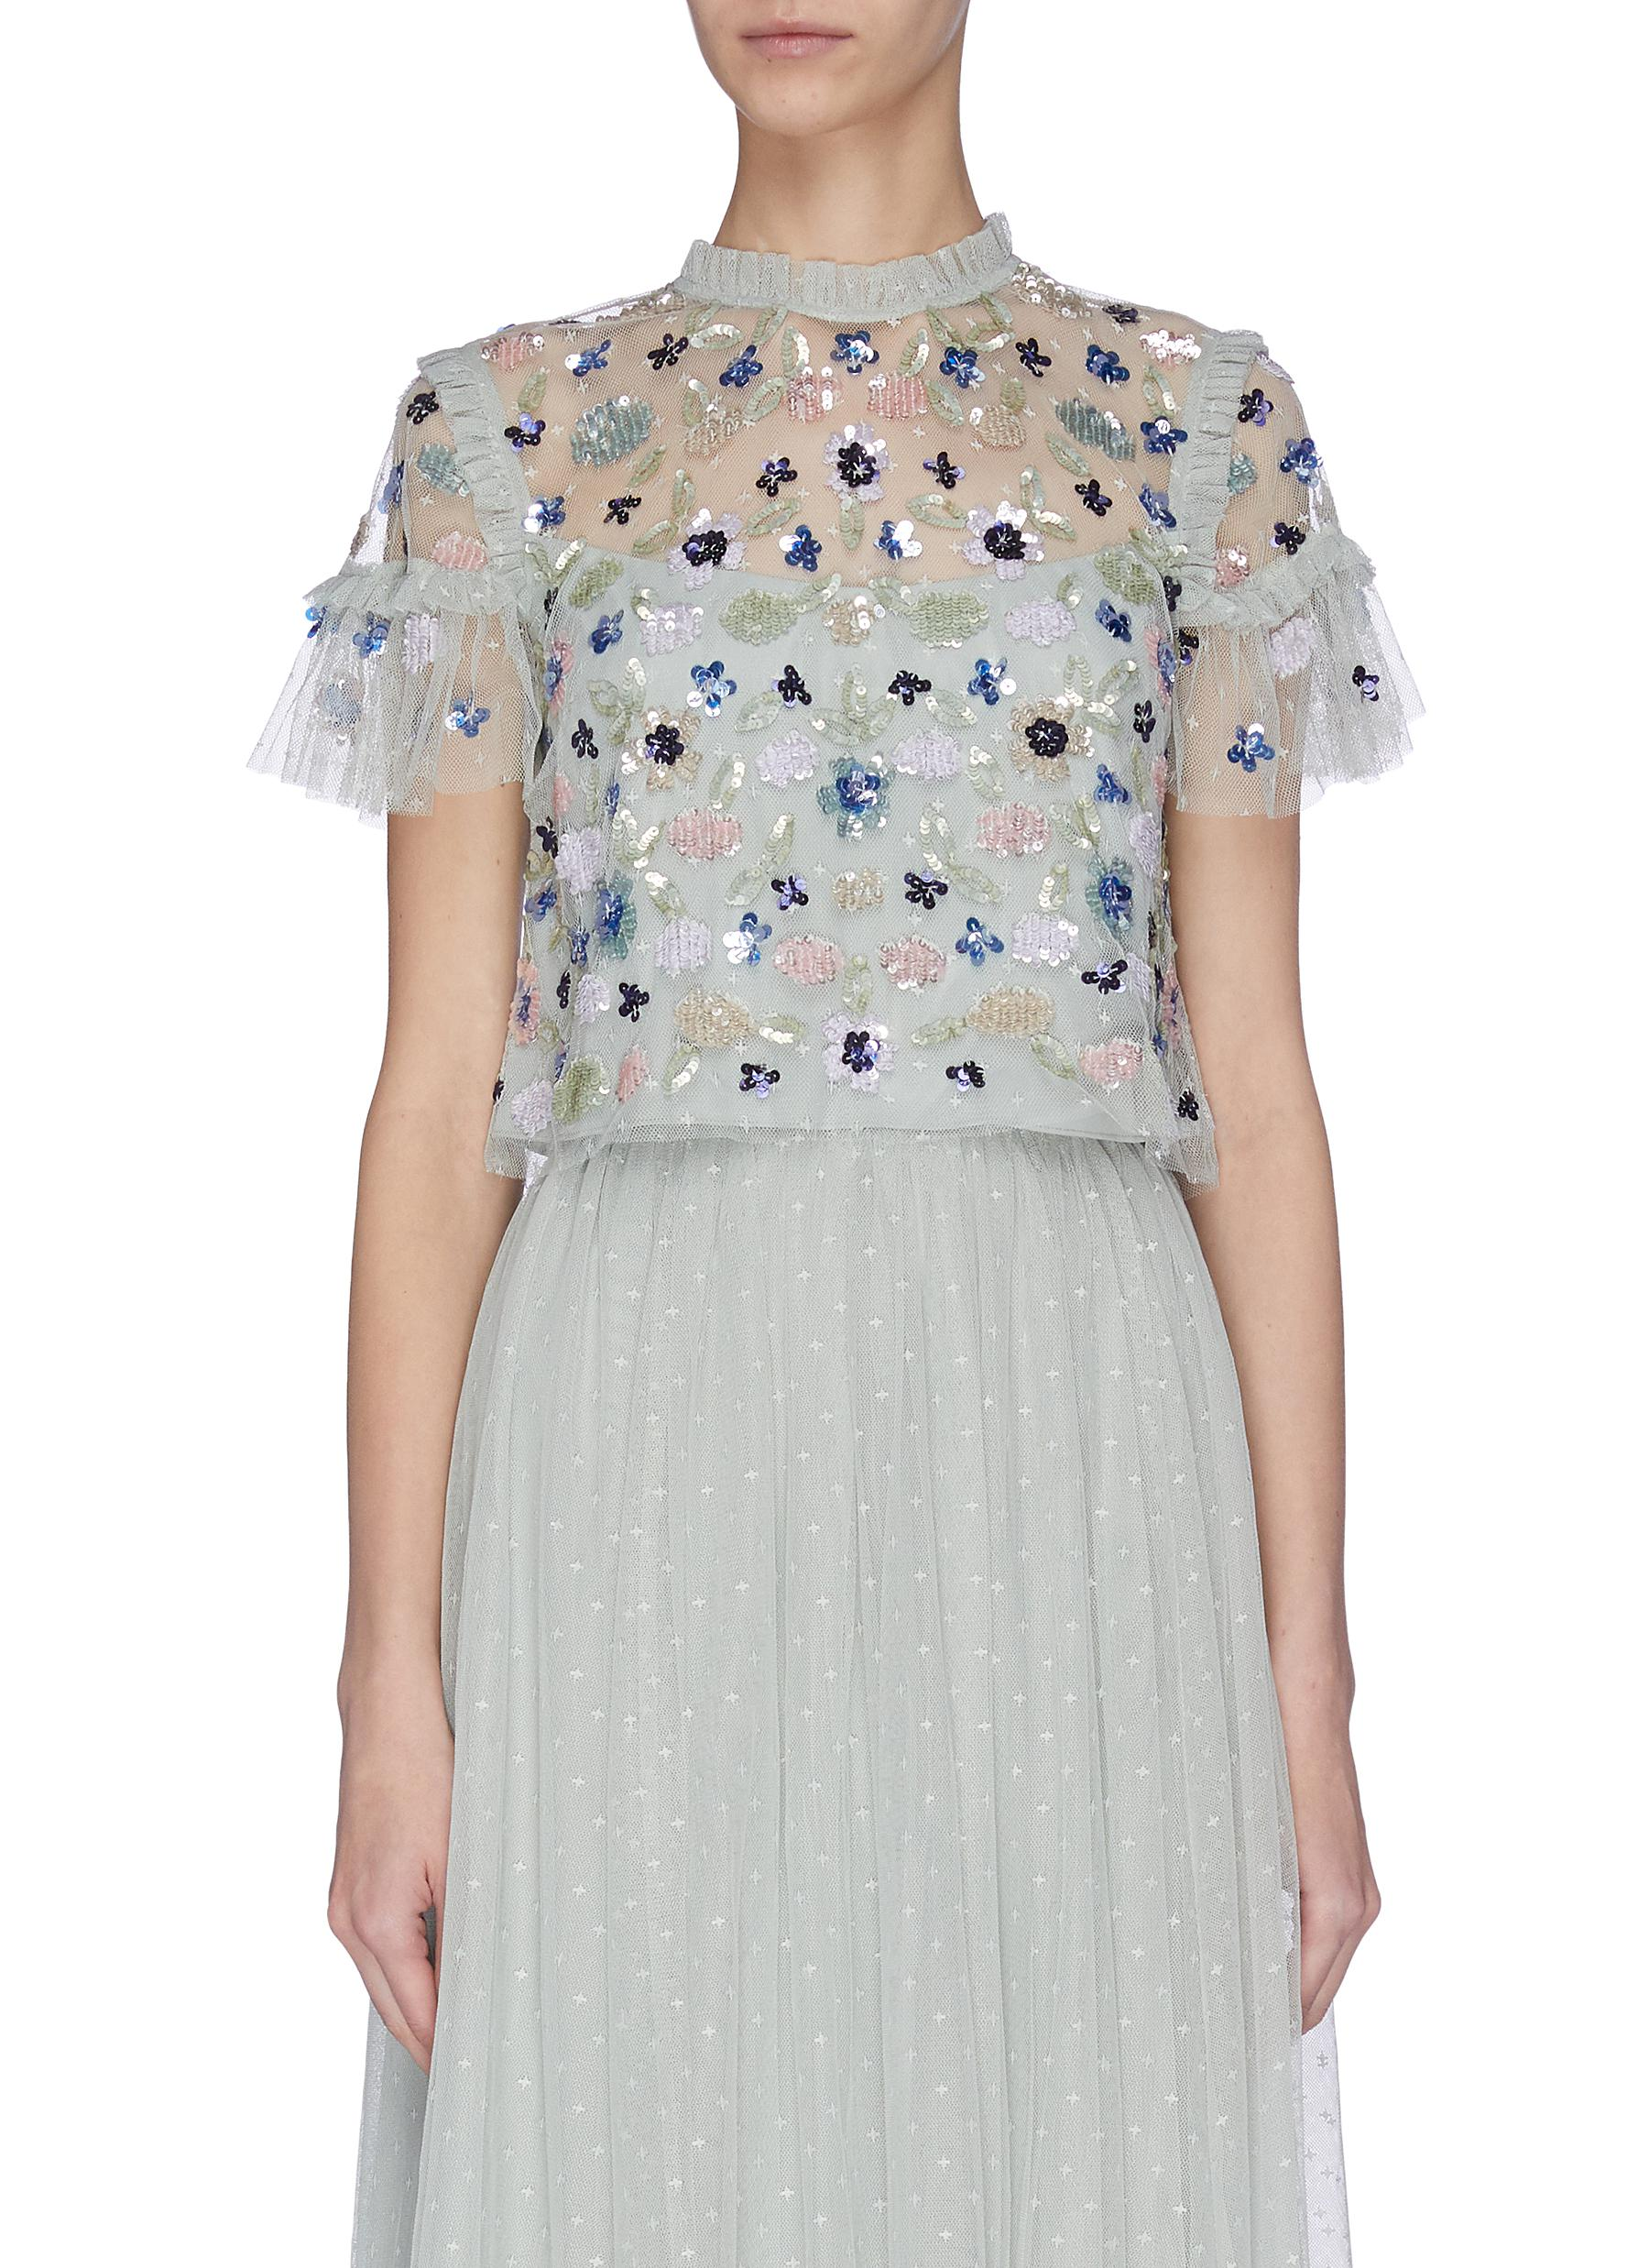 Buy Needle & Thread Tops 'Meadow' sequin embroidered ruffle sheer top